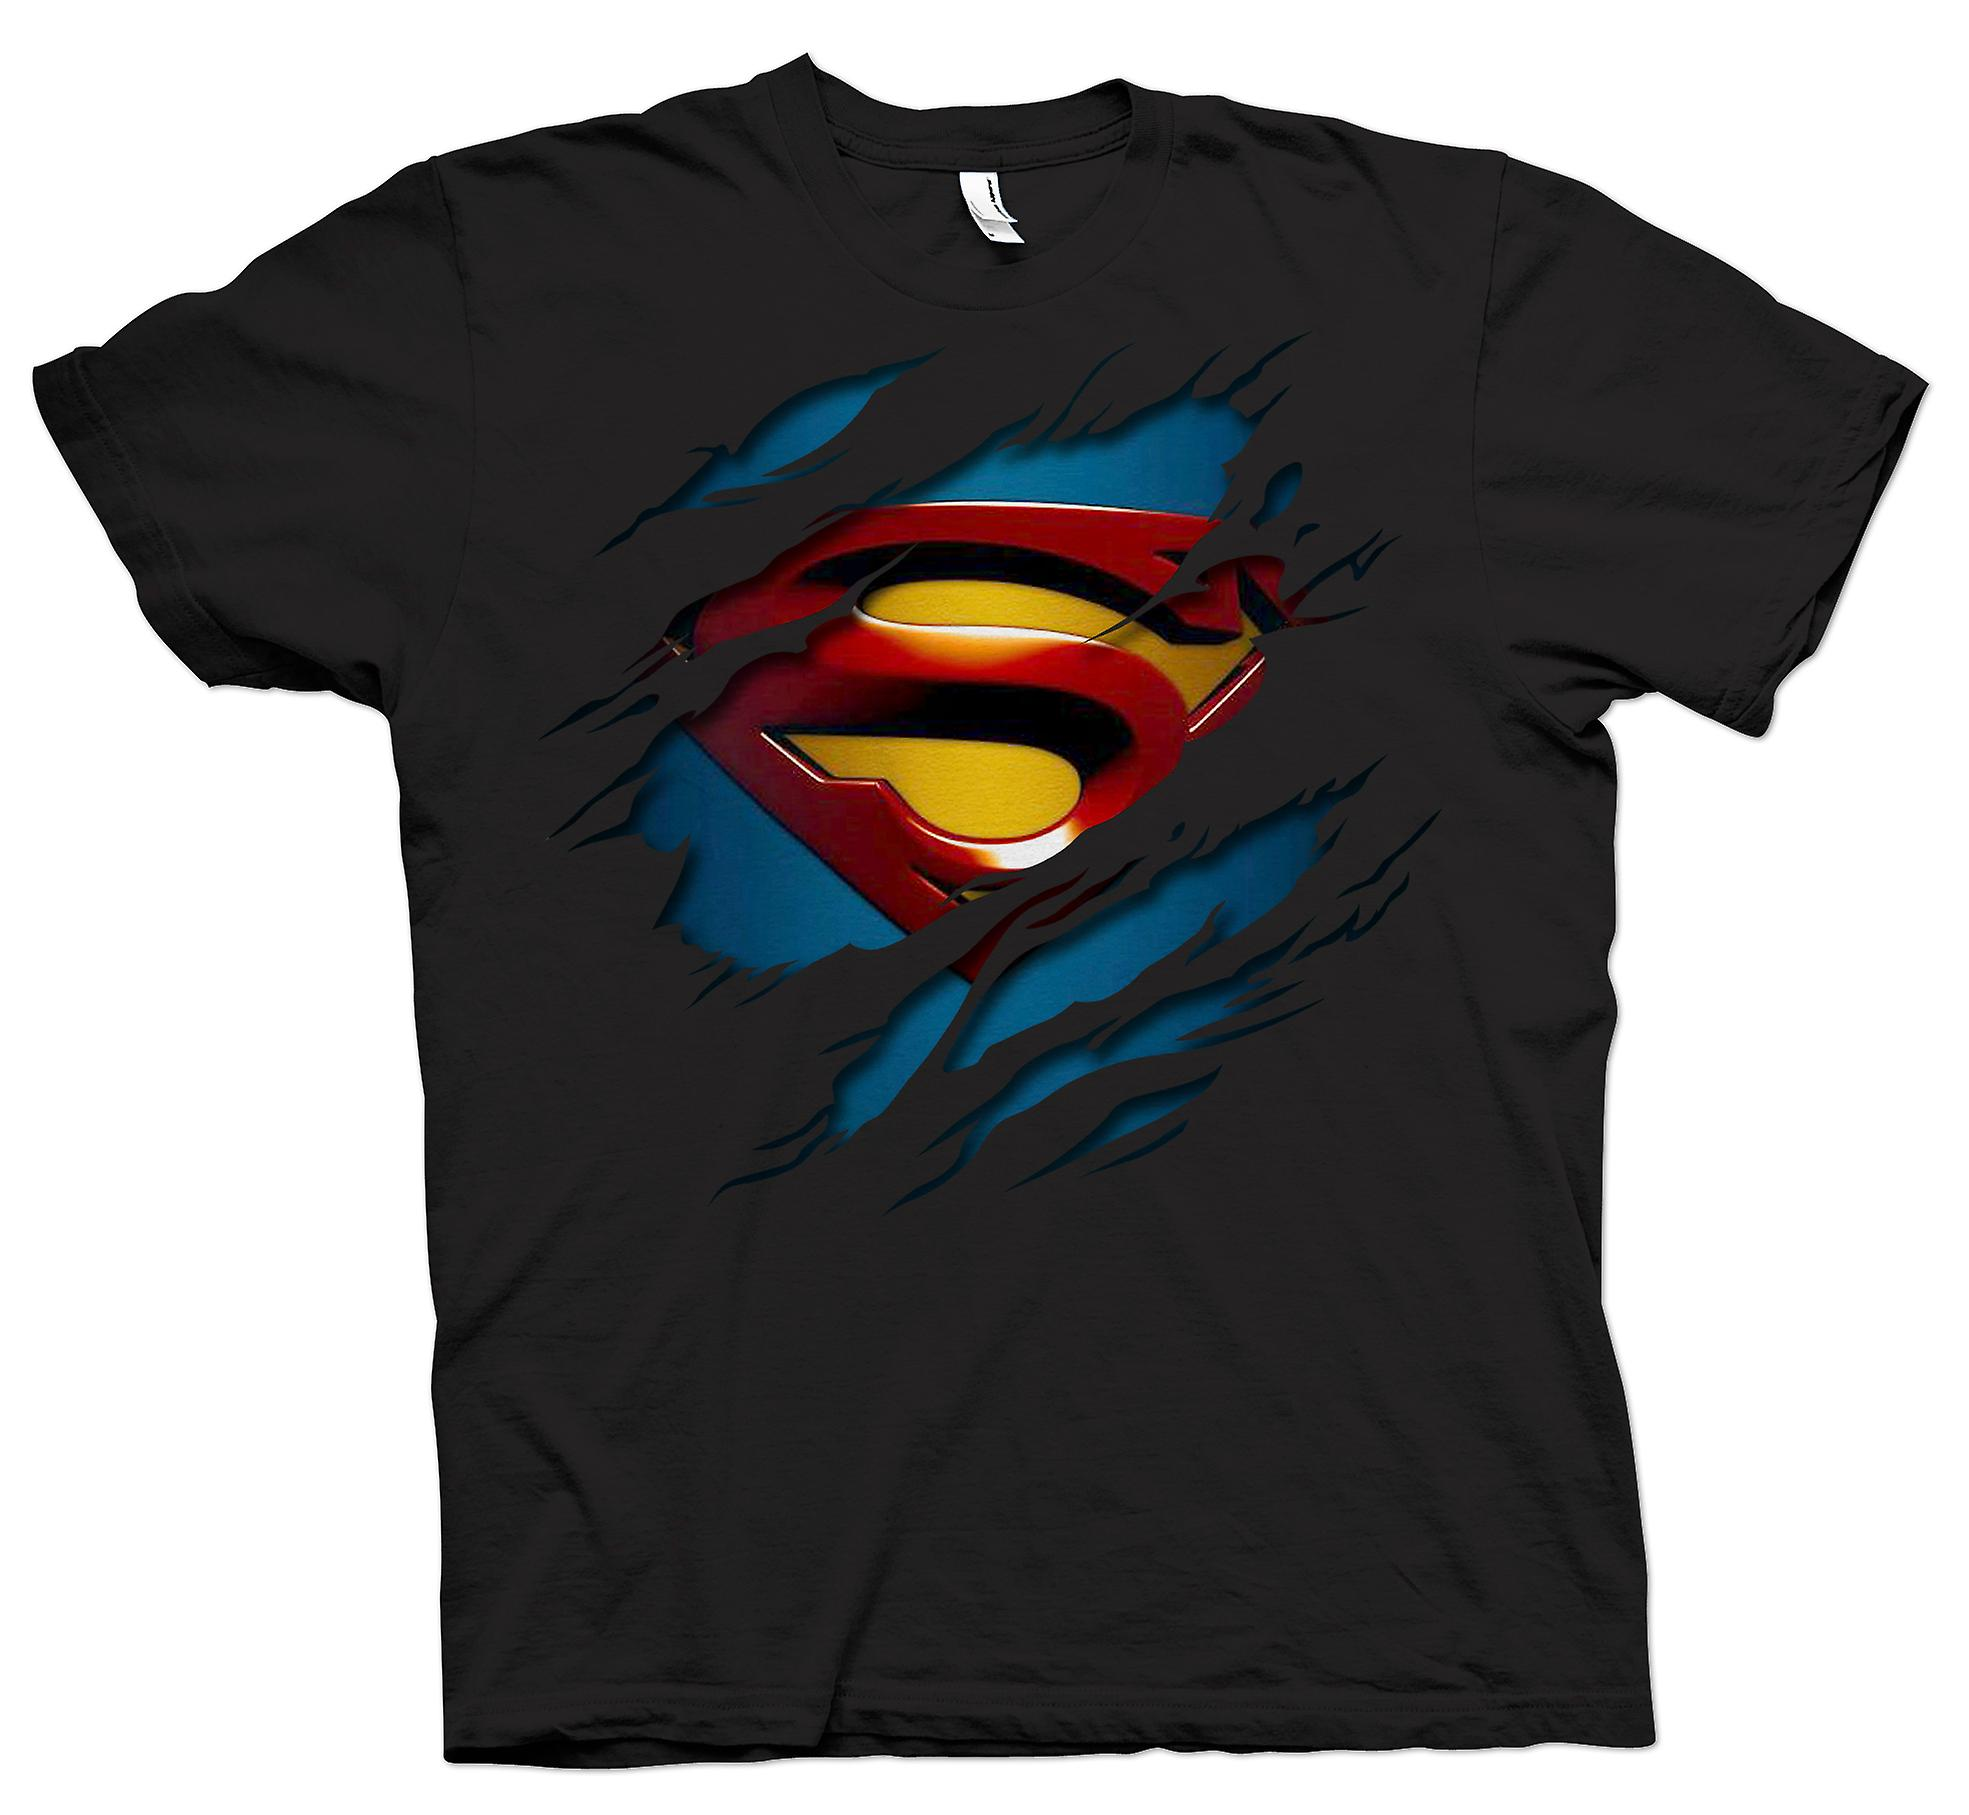 Mens T-shirt-Superman onder Shirt Effect - actie - superheld